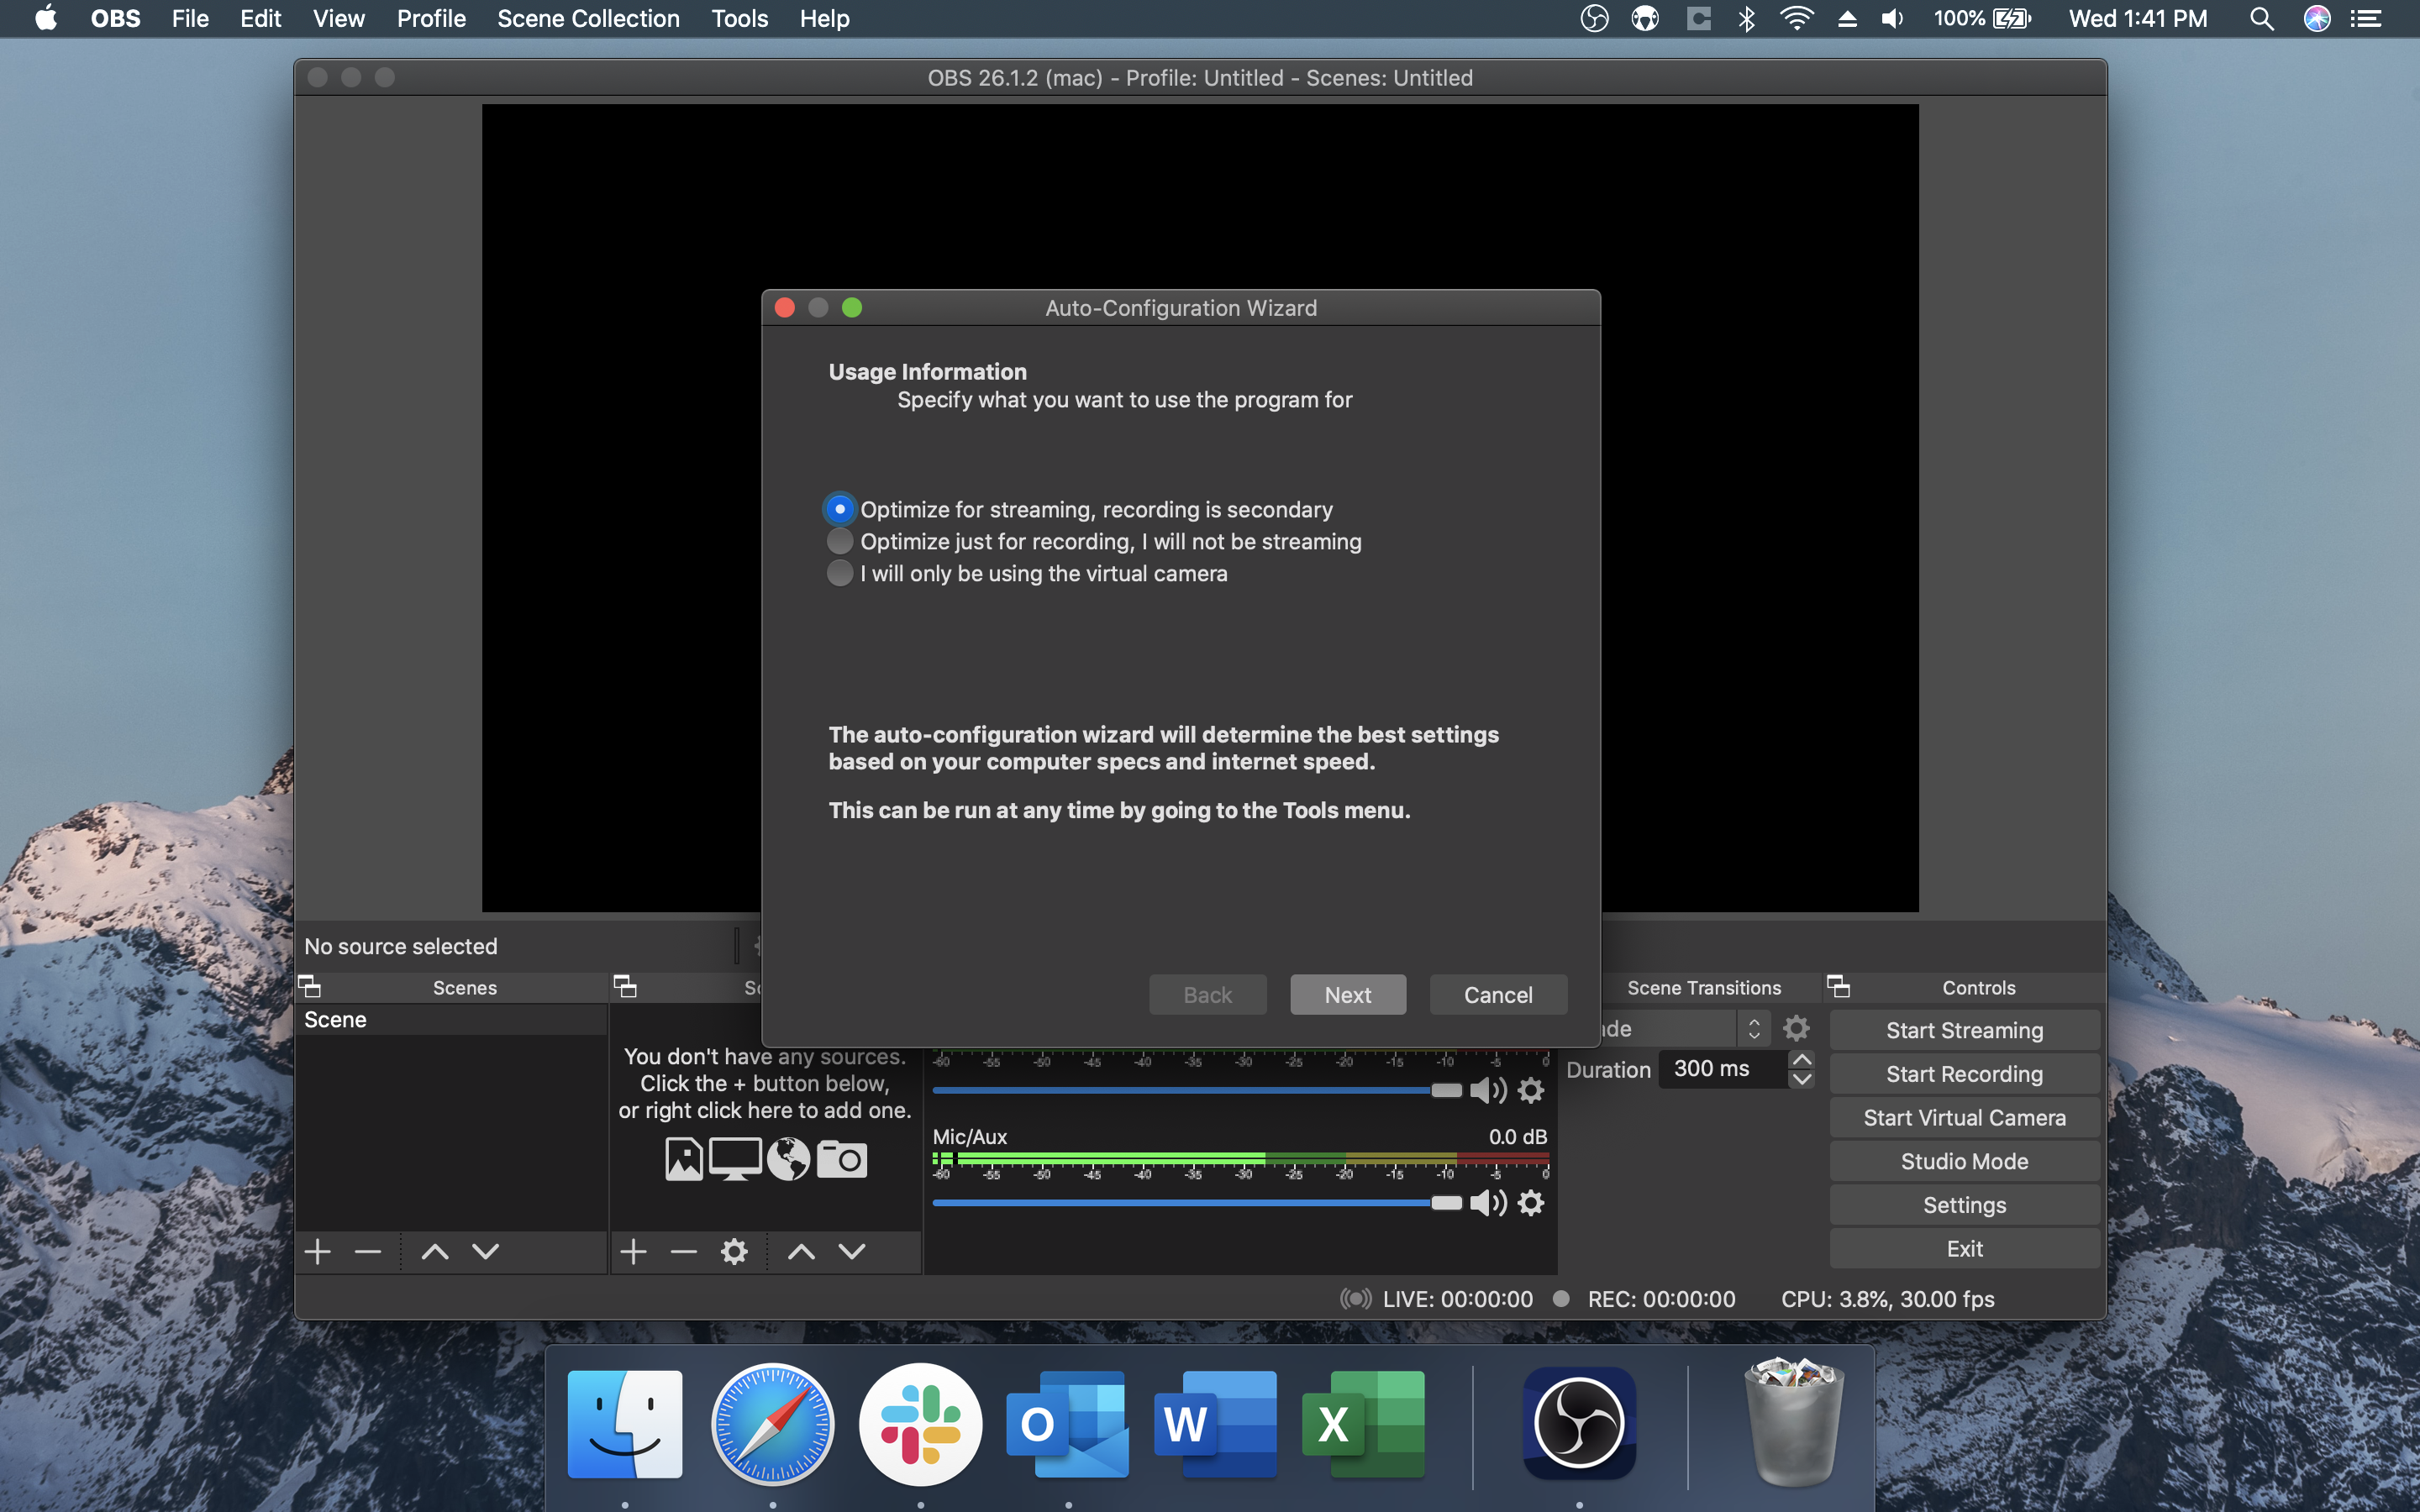 OBS Auto-Configuration Wizen Optimize for Streaming